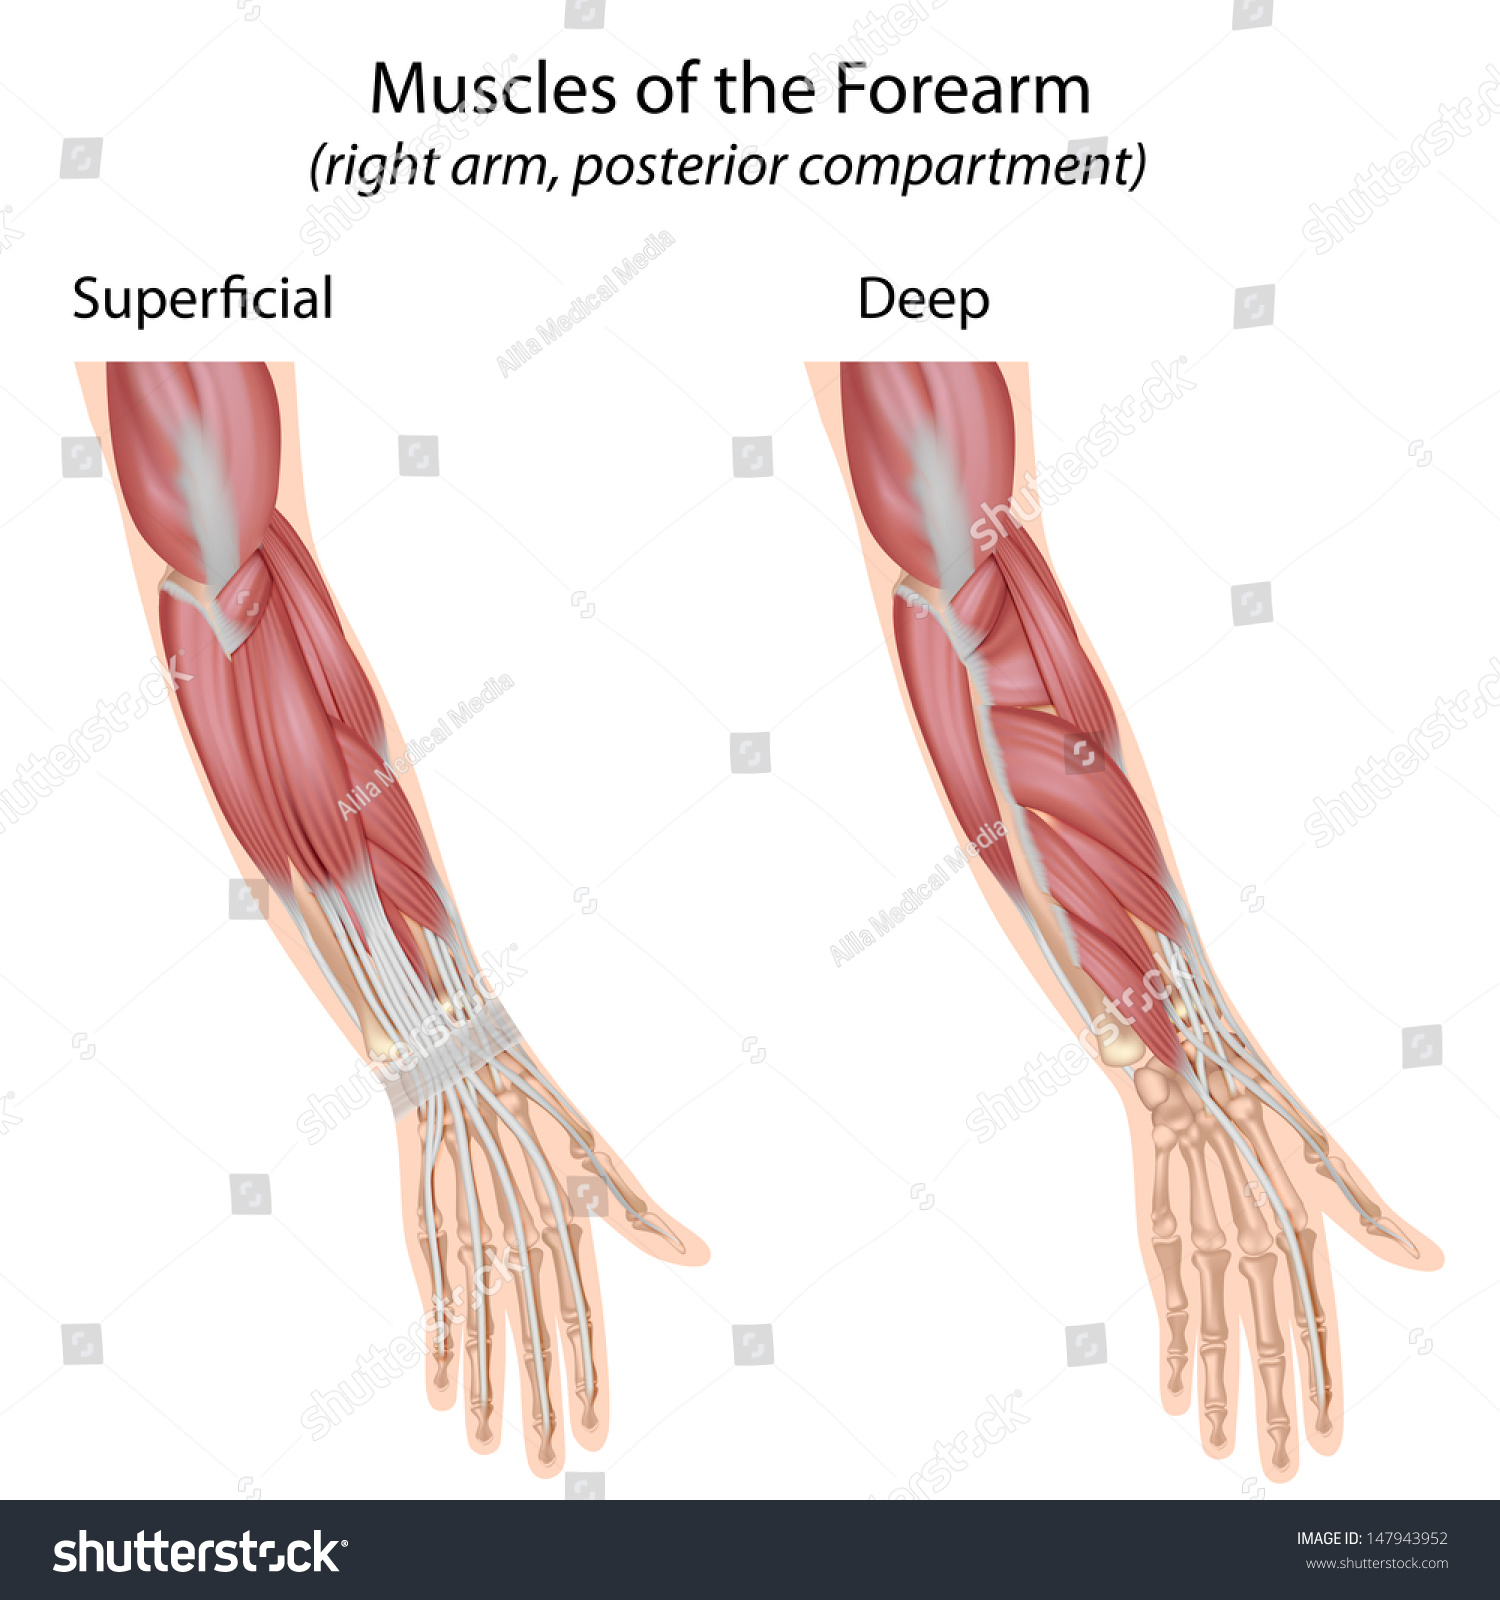 Forearm Muscles Dorsal Compartment Unlabeled Stock